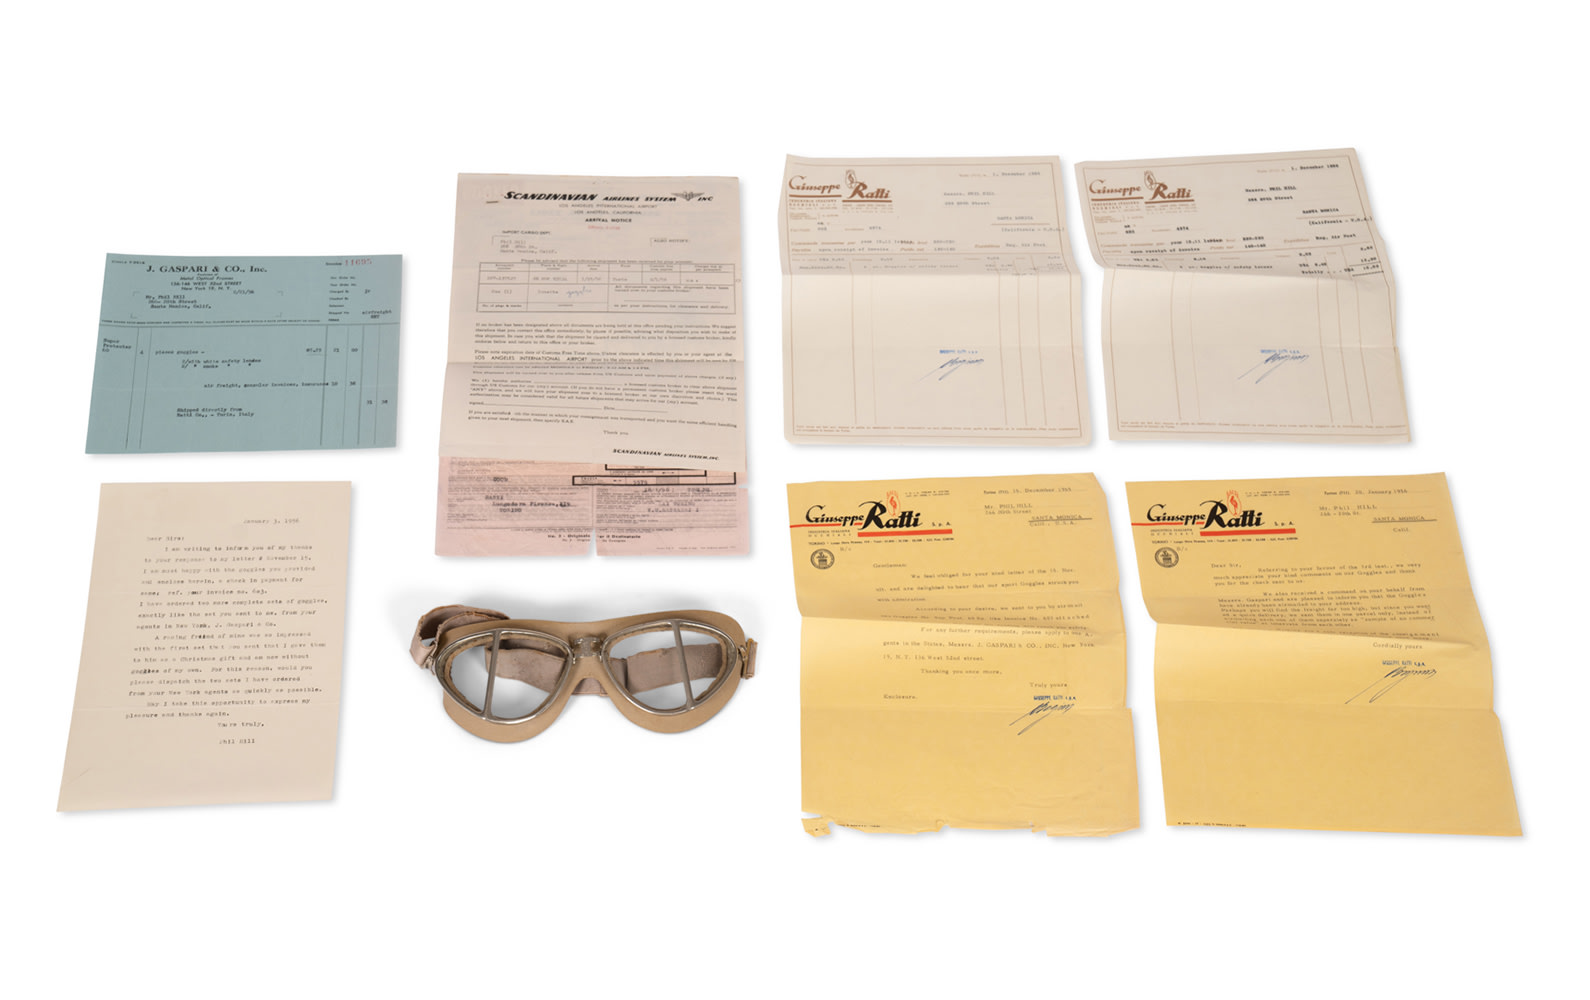 Giuseppi Ratti Racing Goggles with Original Invoice, Shipping Paperwork, and Letter from Phil Hill to Manufacturer